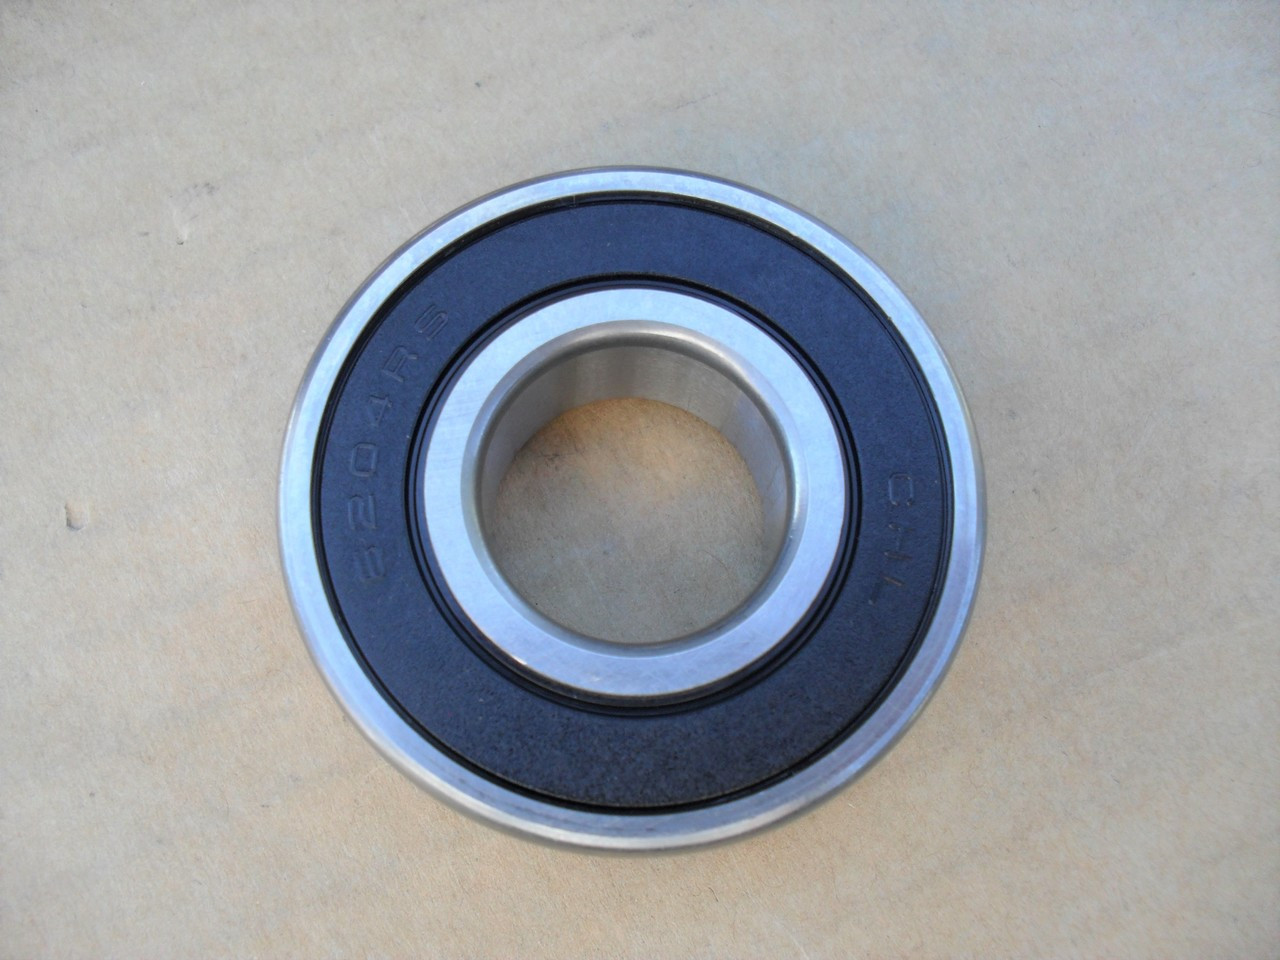 Lawn Mower Ball Bearing Deck Spindle Bearings Replacement for Husqvarna 532129895 738220419 MTD 741-0919 Troy-Bilt 1185121 1728255